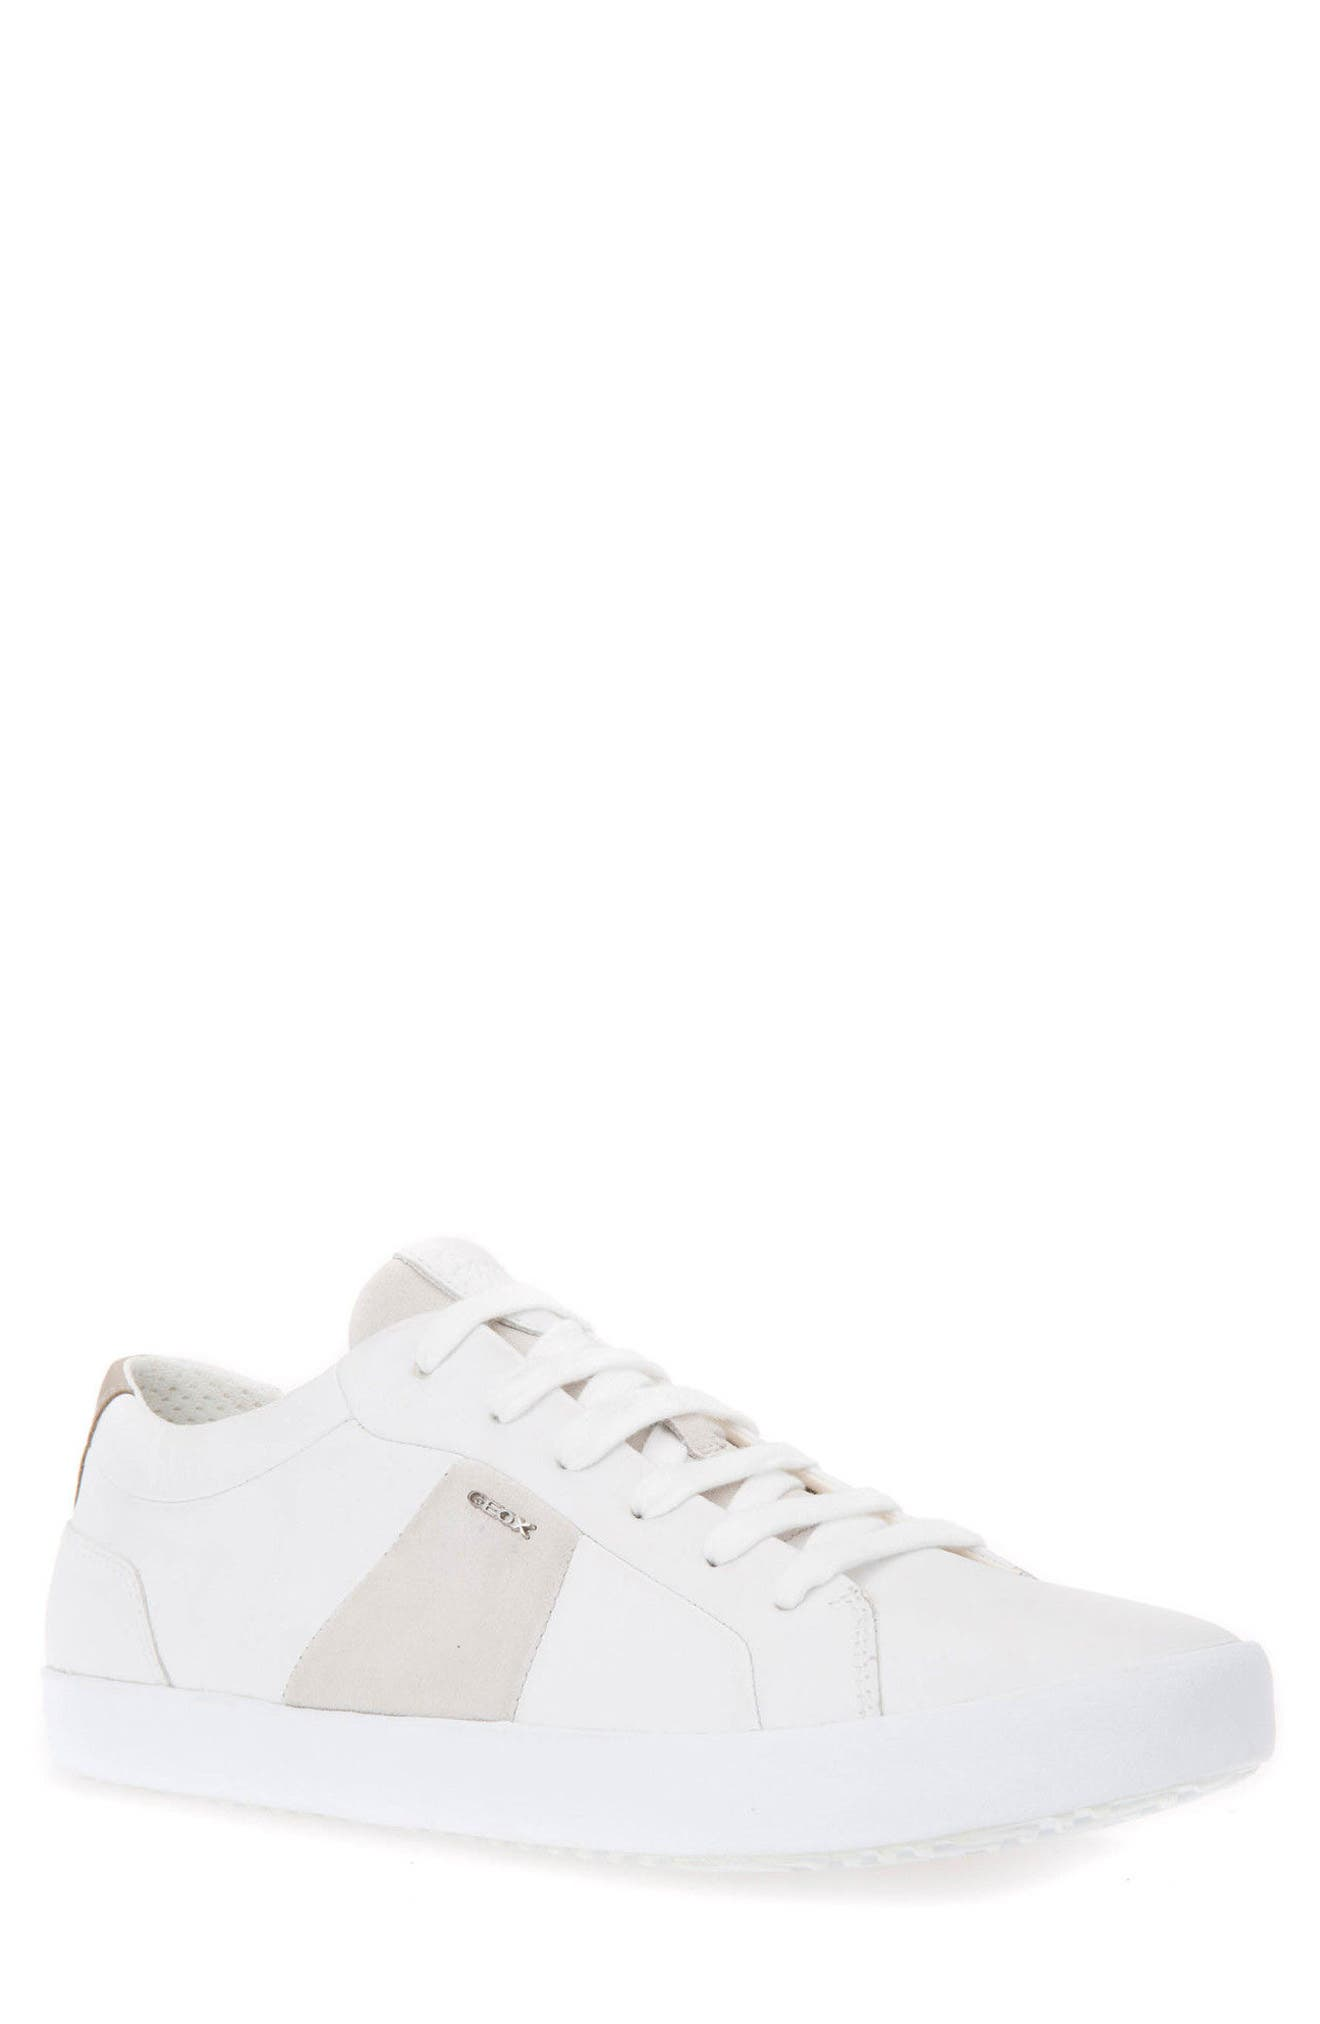 Smart 78 Sneaker,                             Main thumbnail 1, color,                             White/ Papyrus Leather